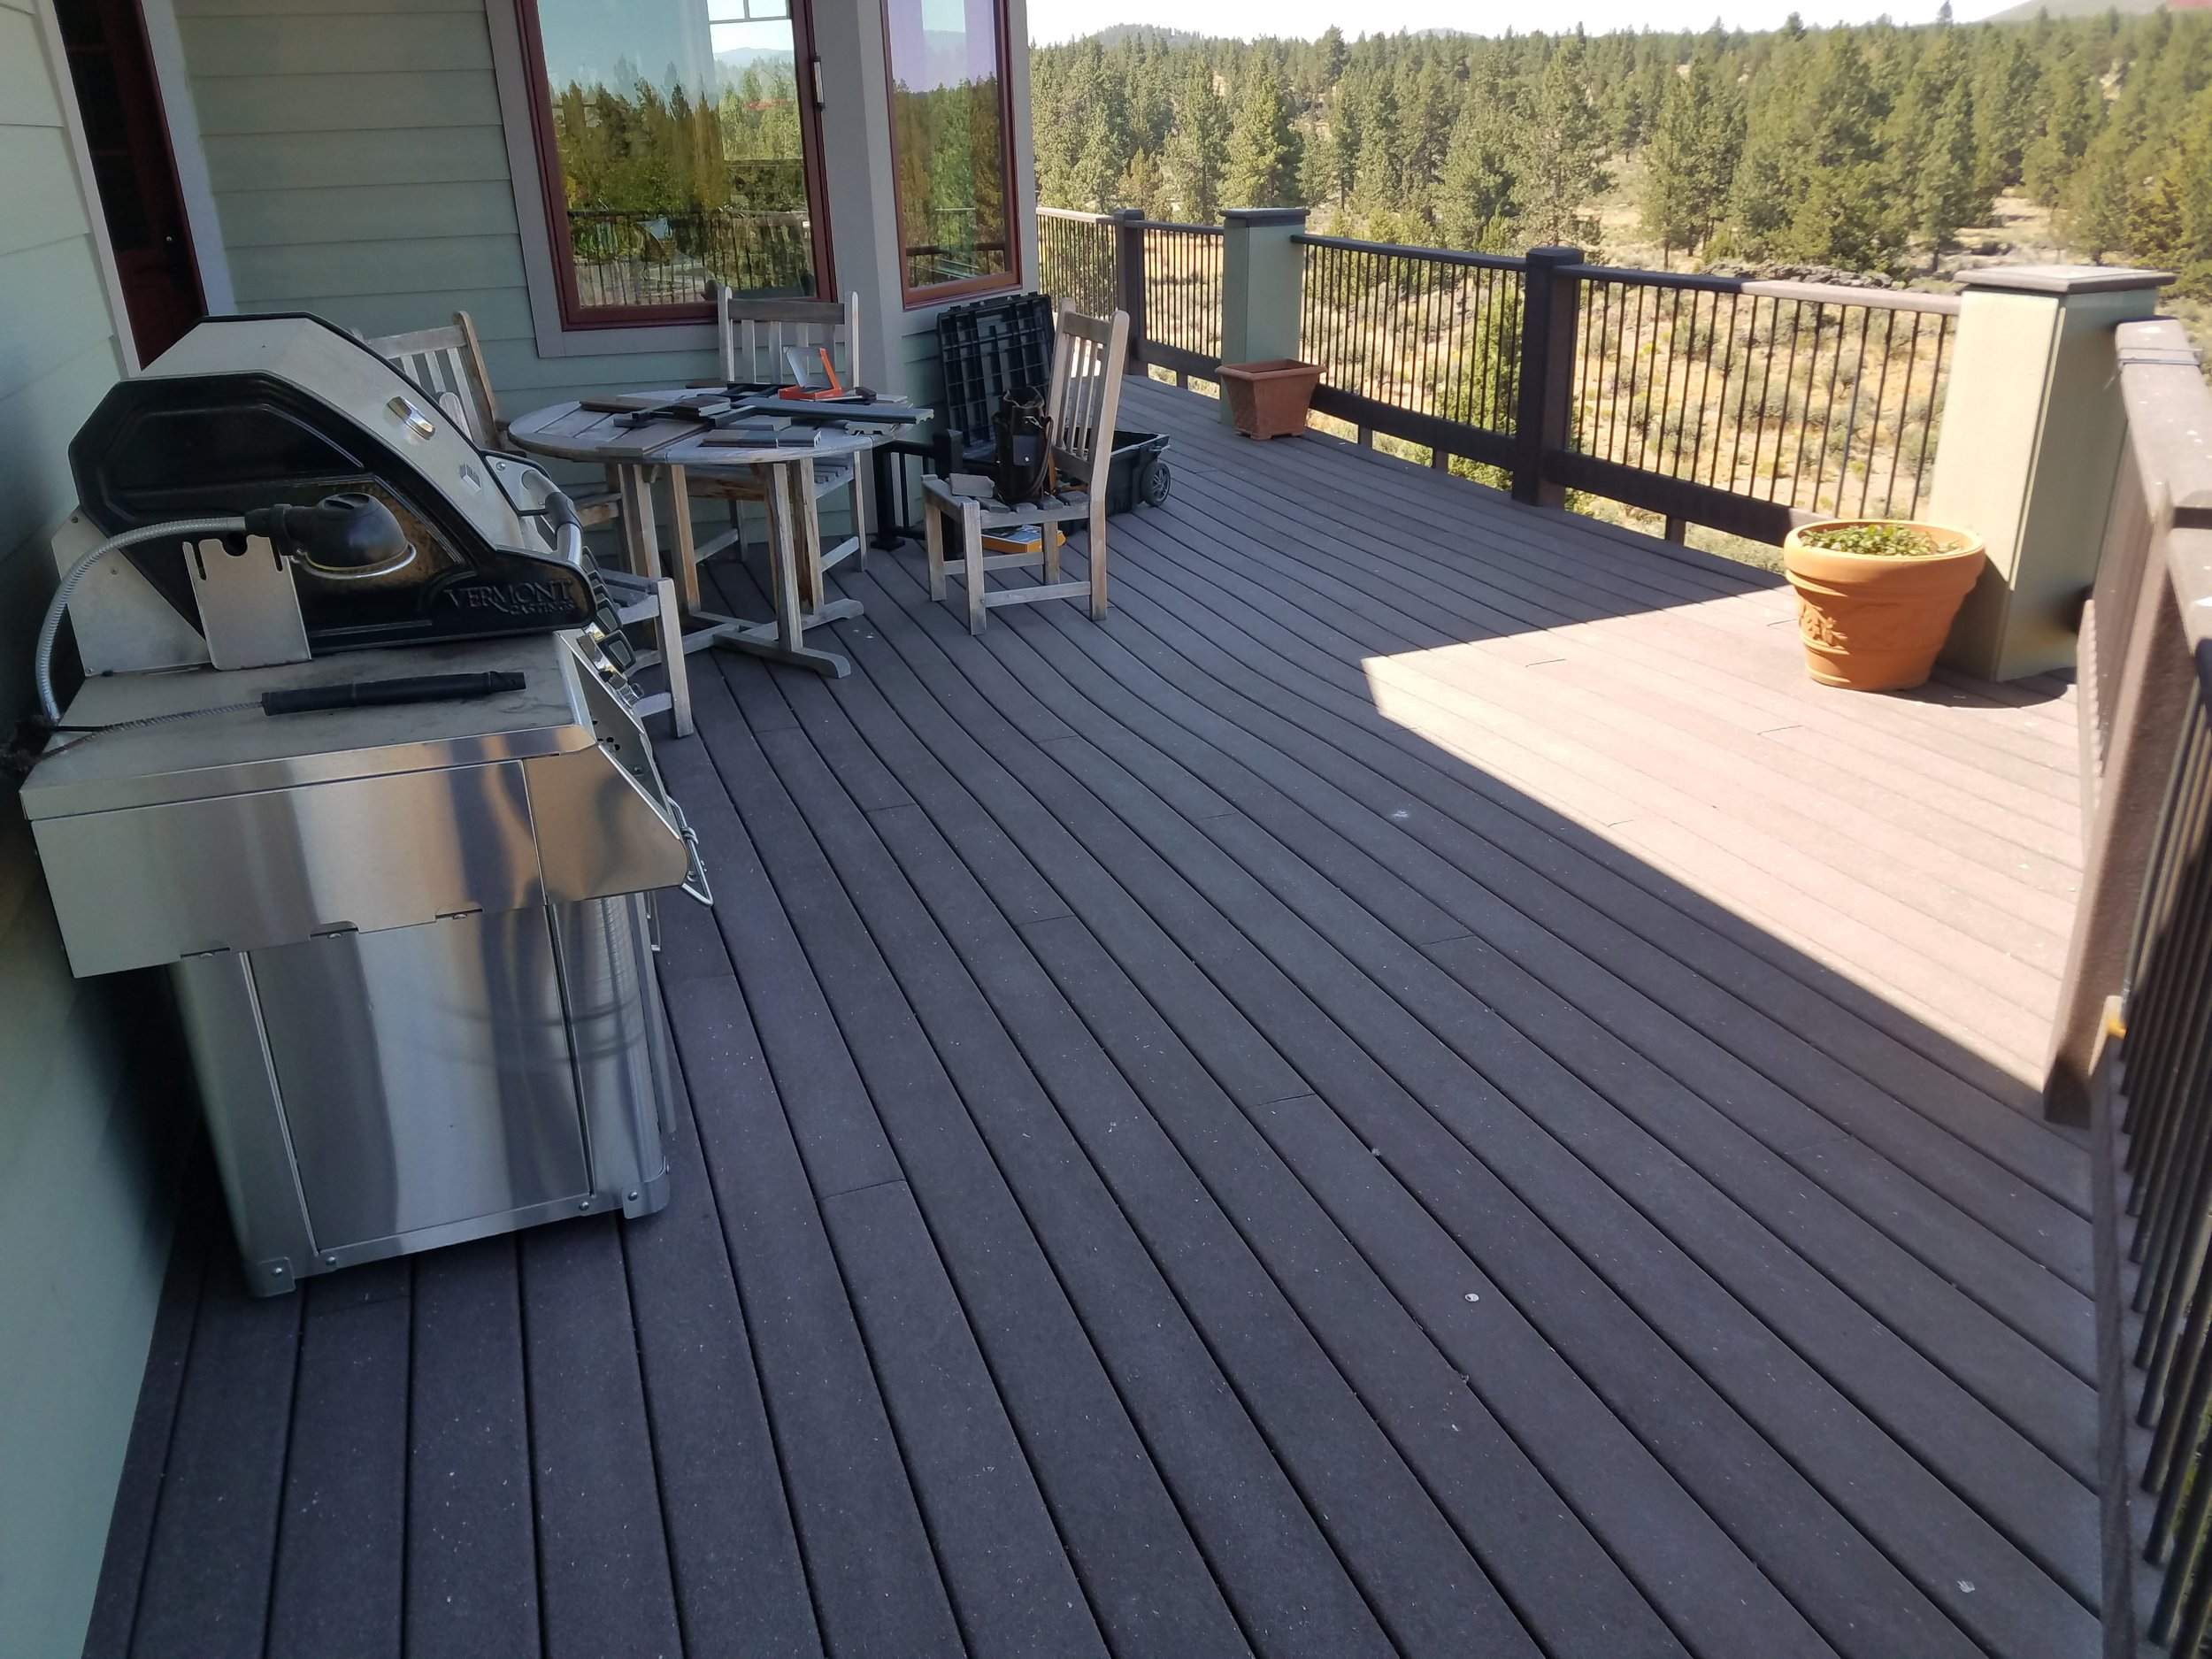 Original deck with first generation non-capped  Trex decking and overspanned joists